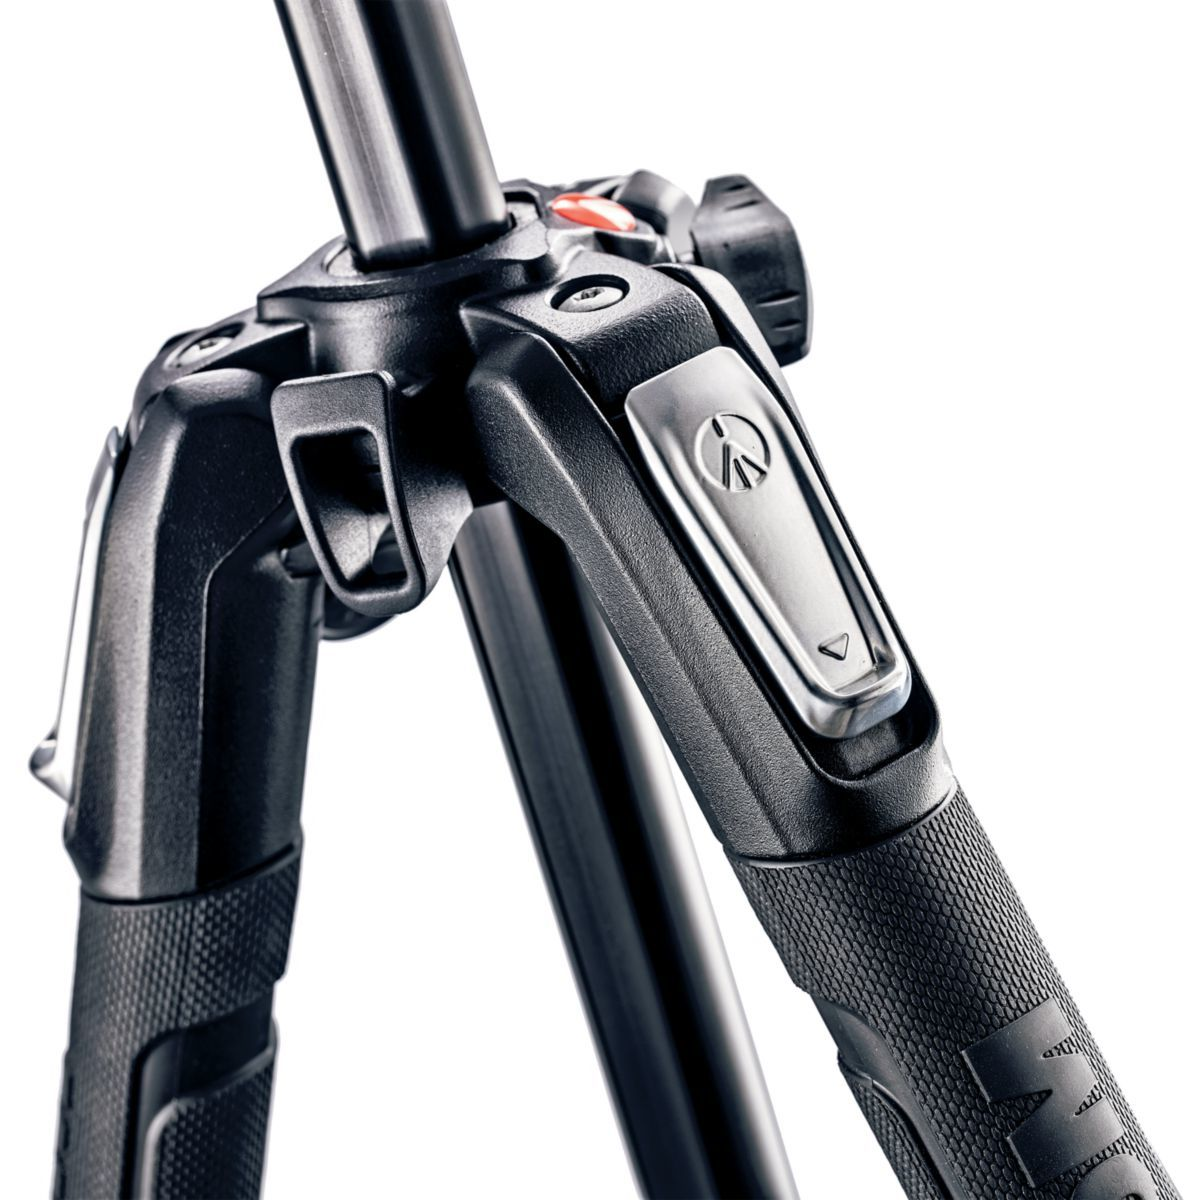 Manfrotto 190X Tripod